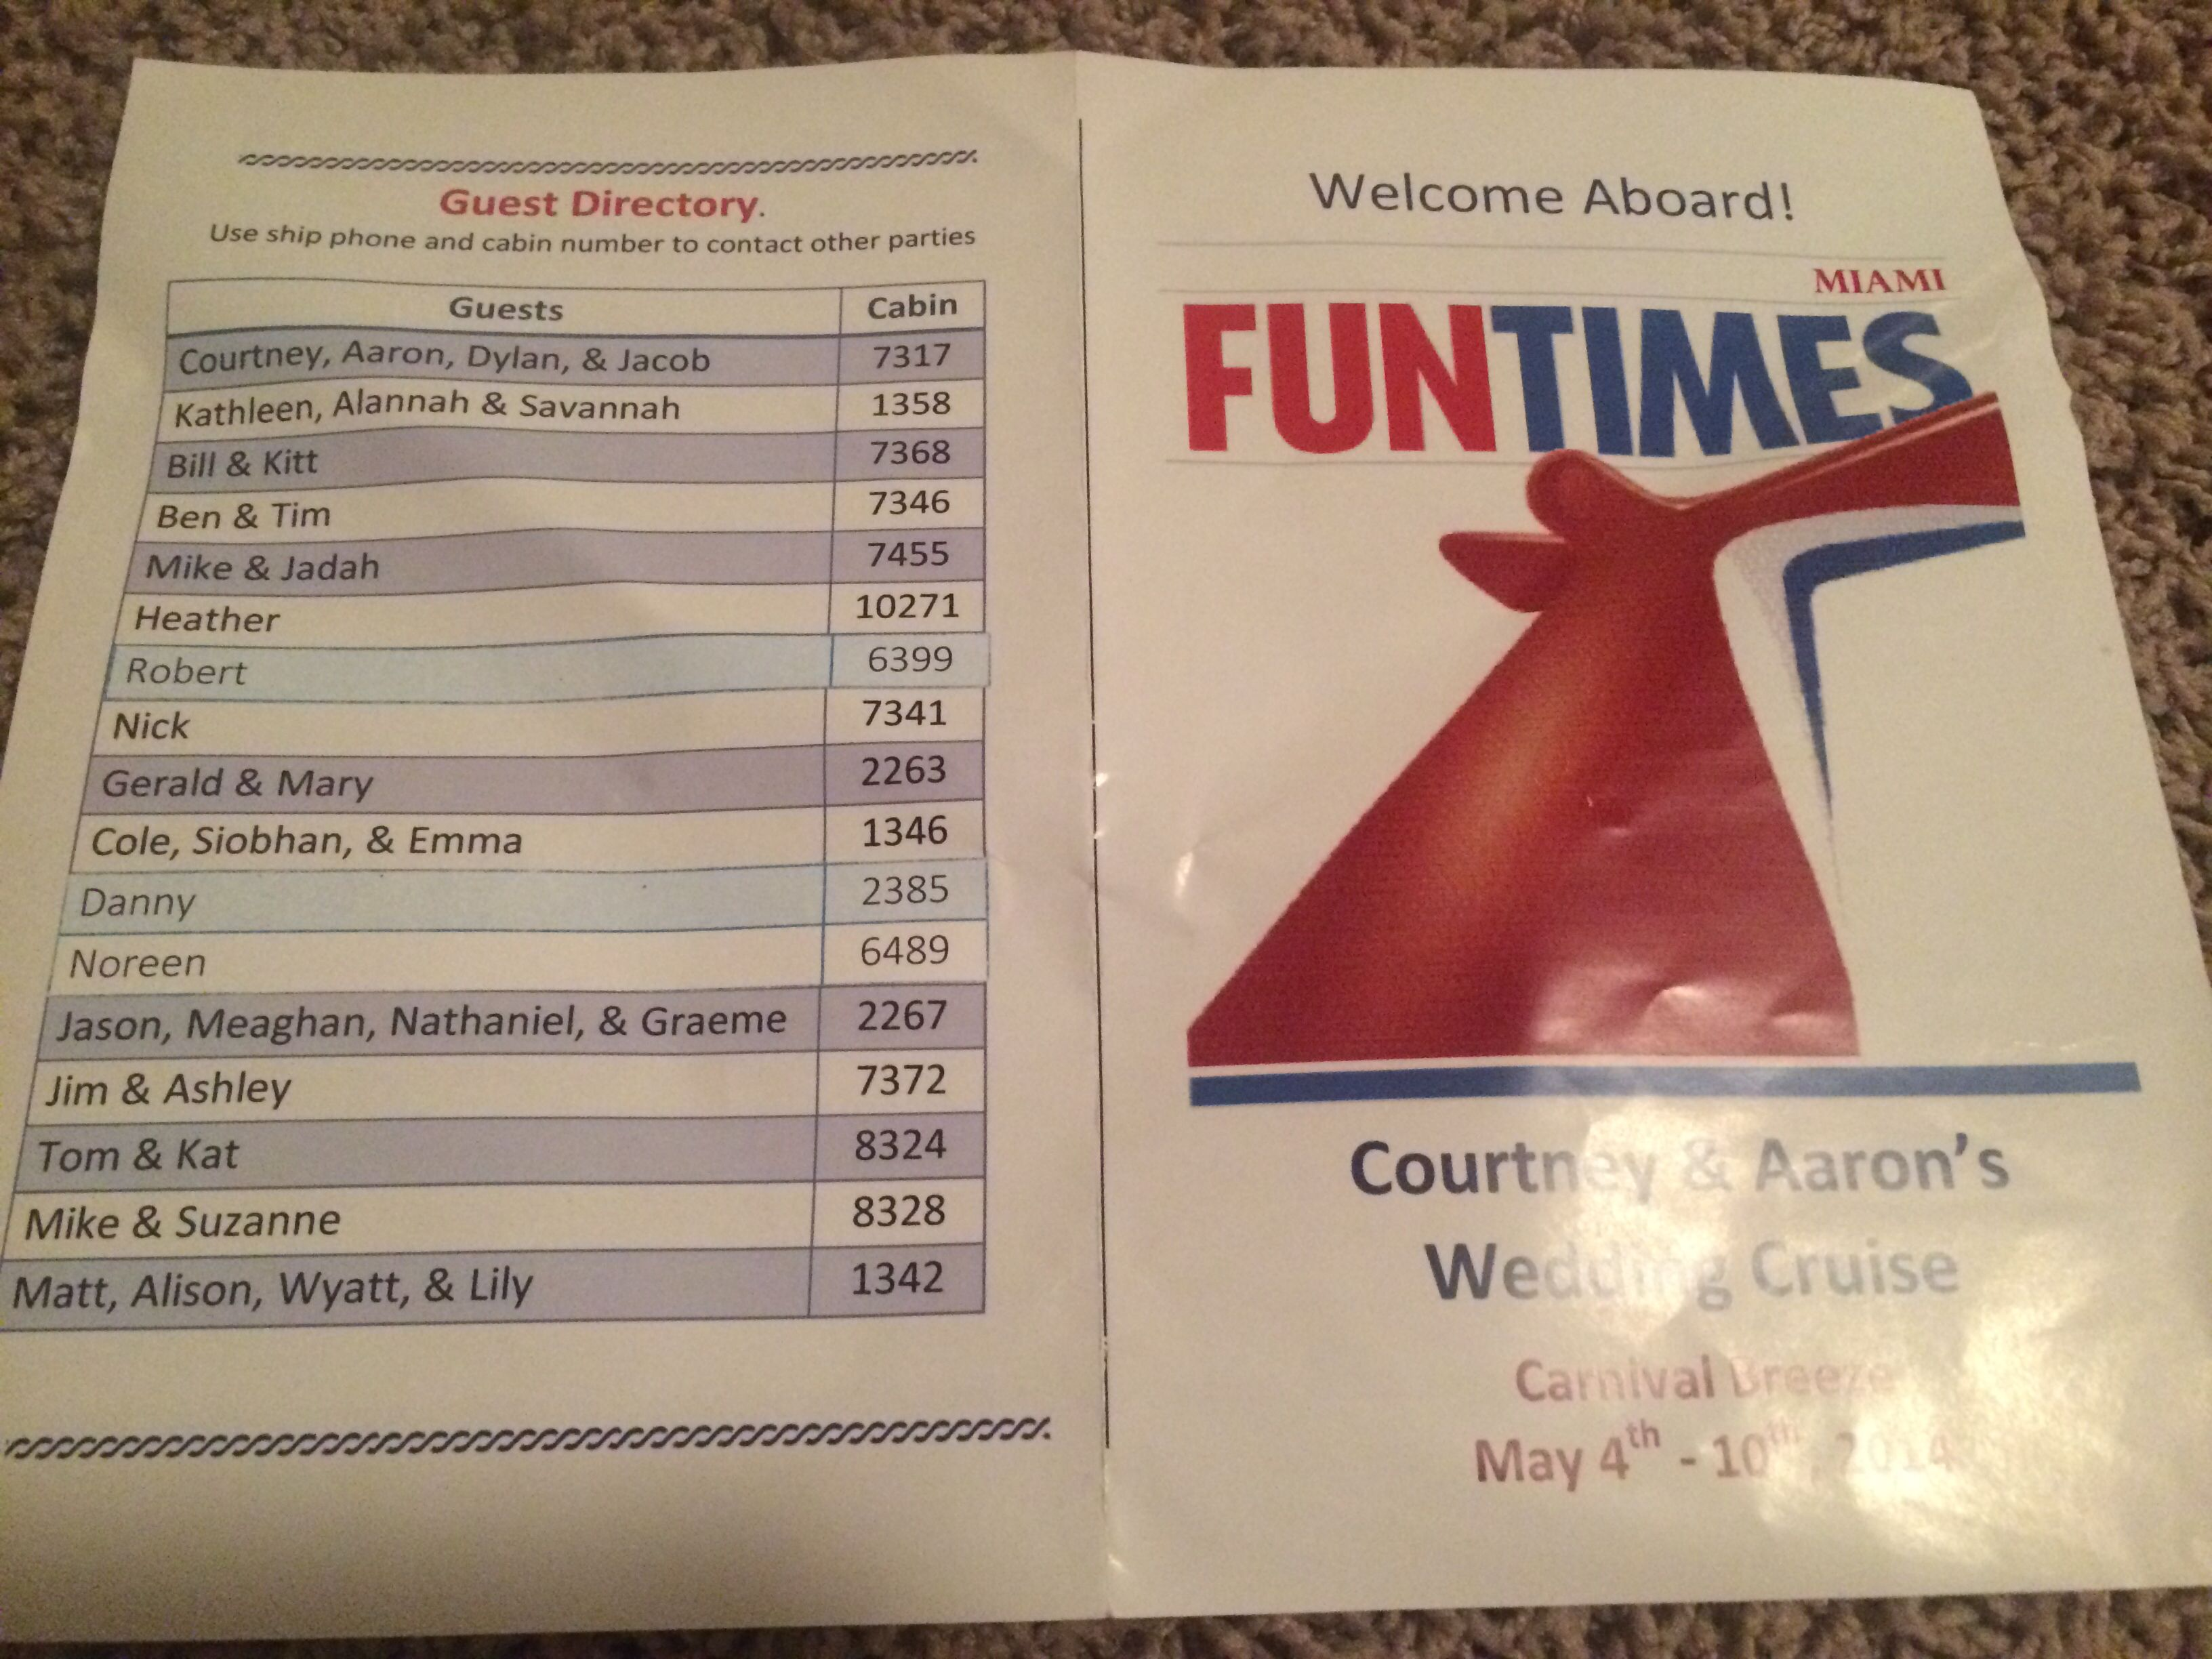 Cruise guest directory carnival breeze cruise wedding front page ...